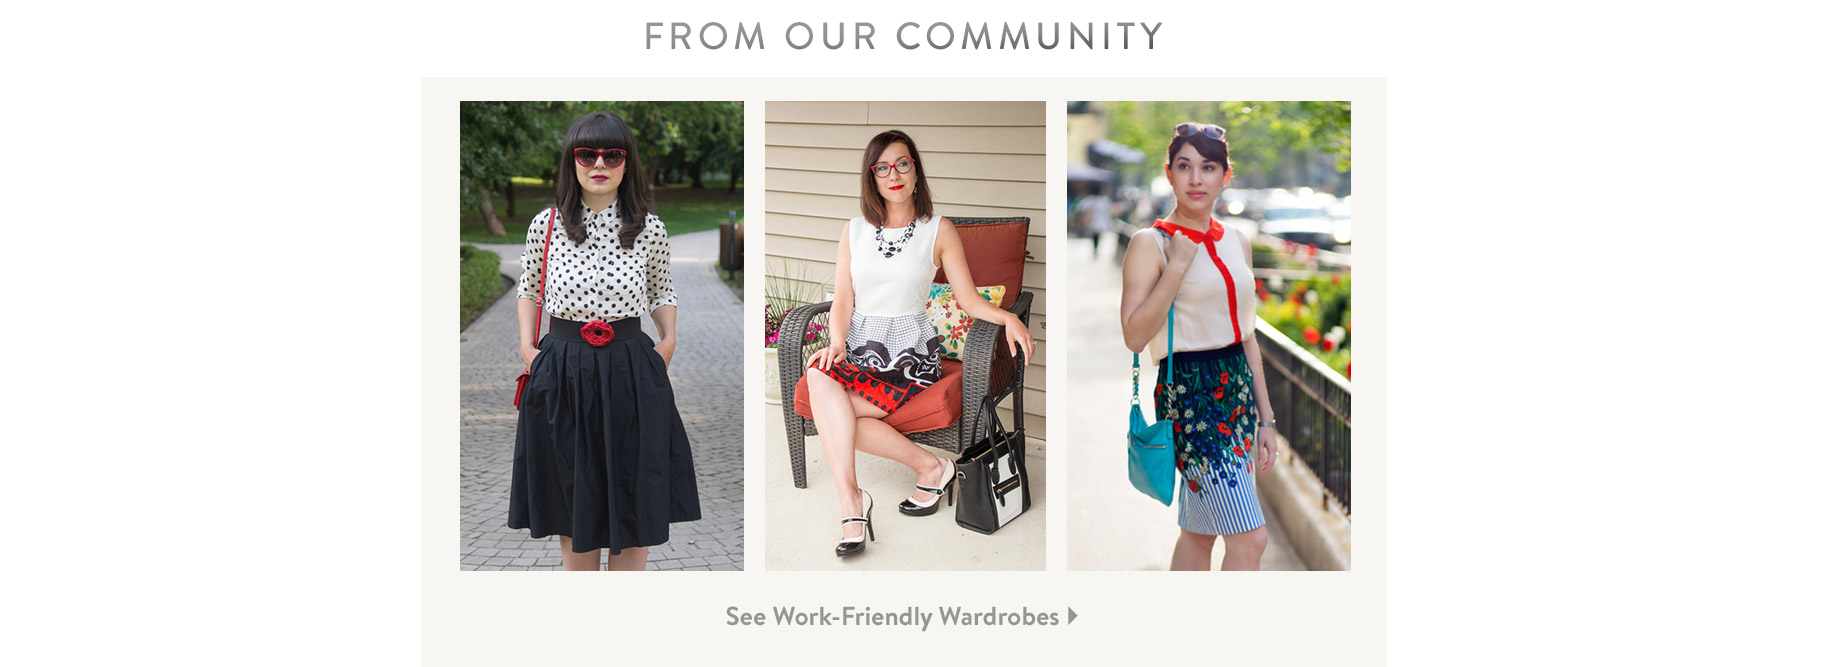 From Our Community. See Work-Friendly Wardrobes.